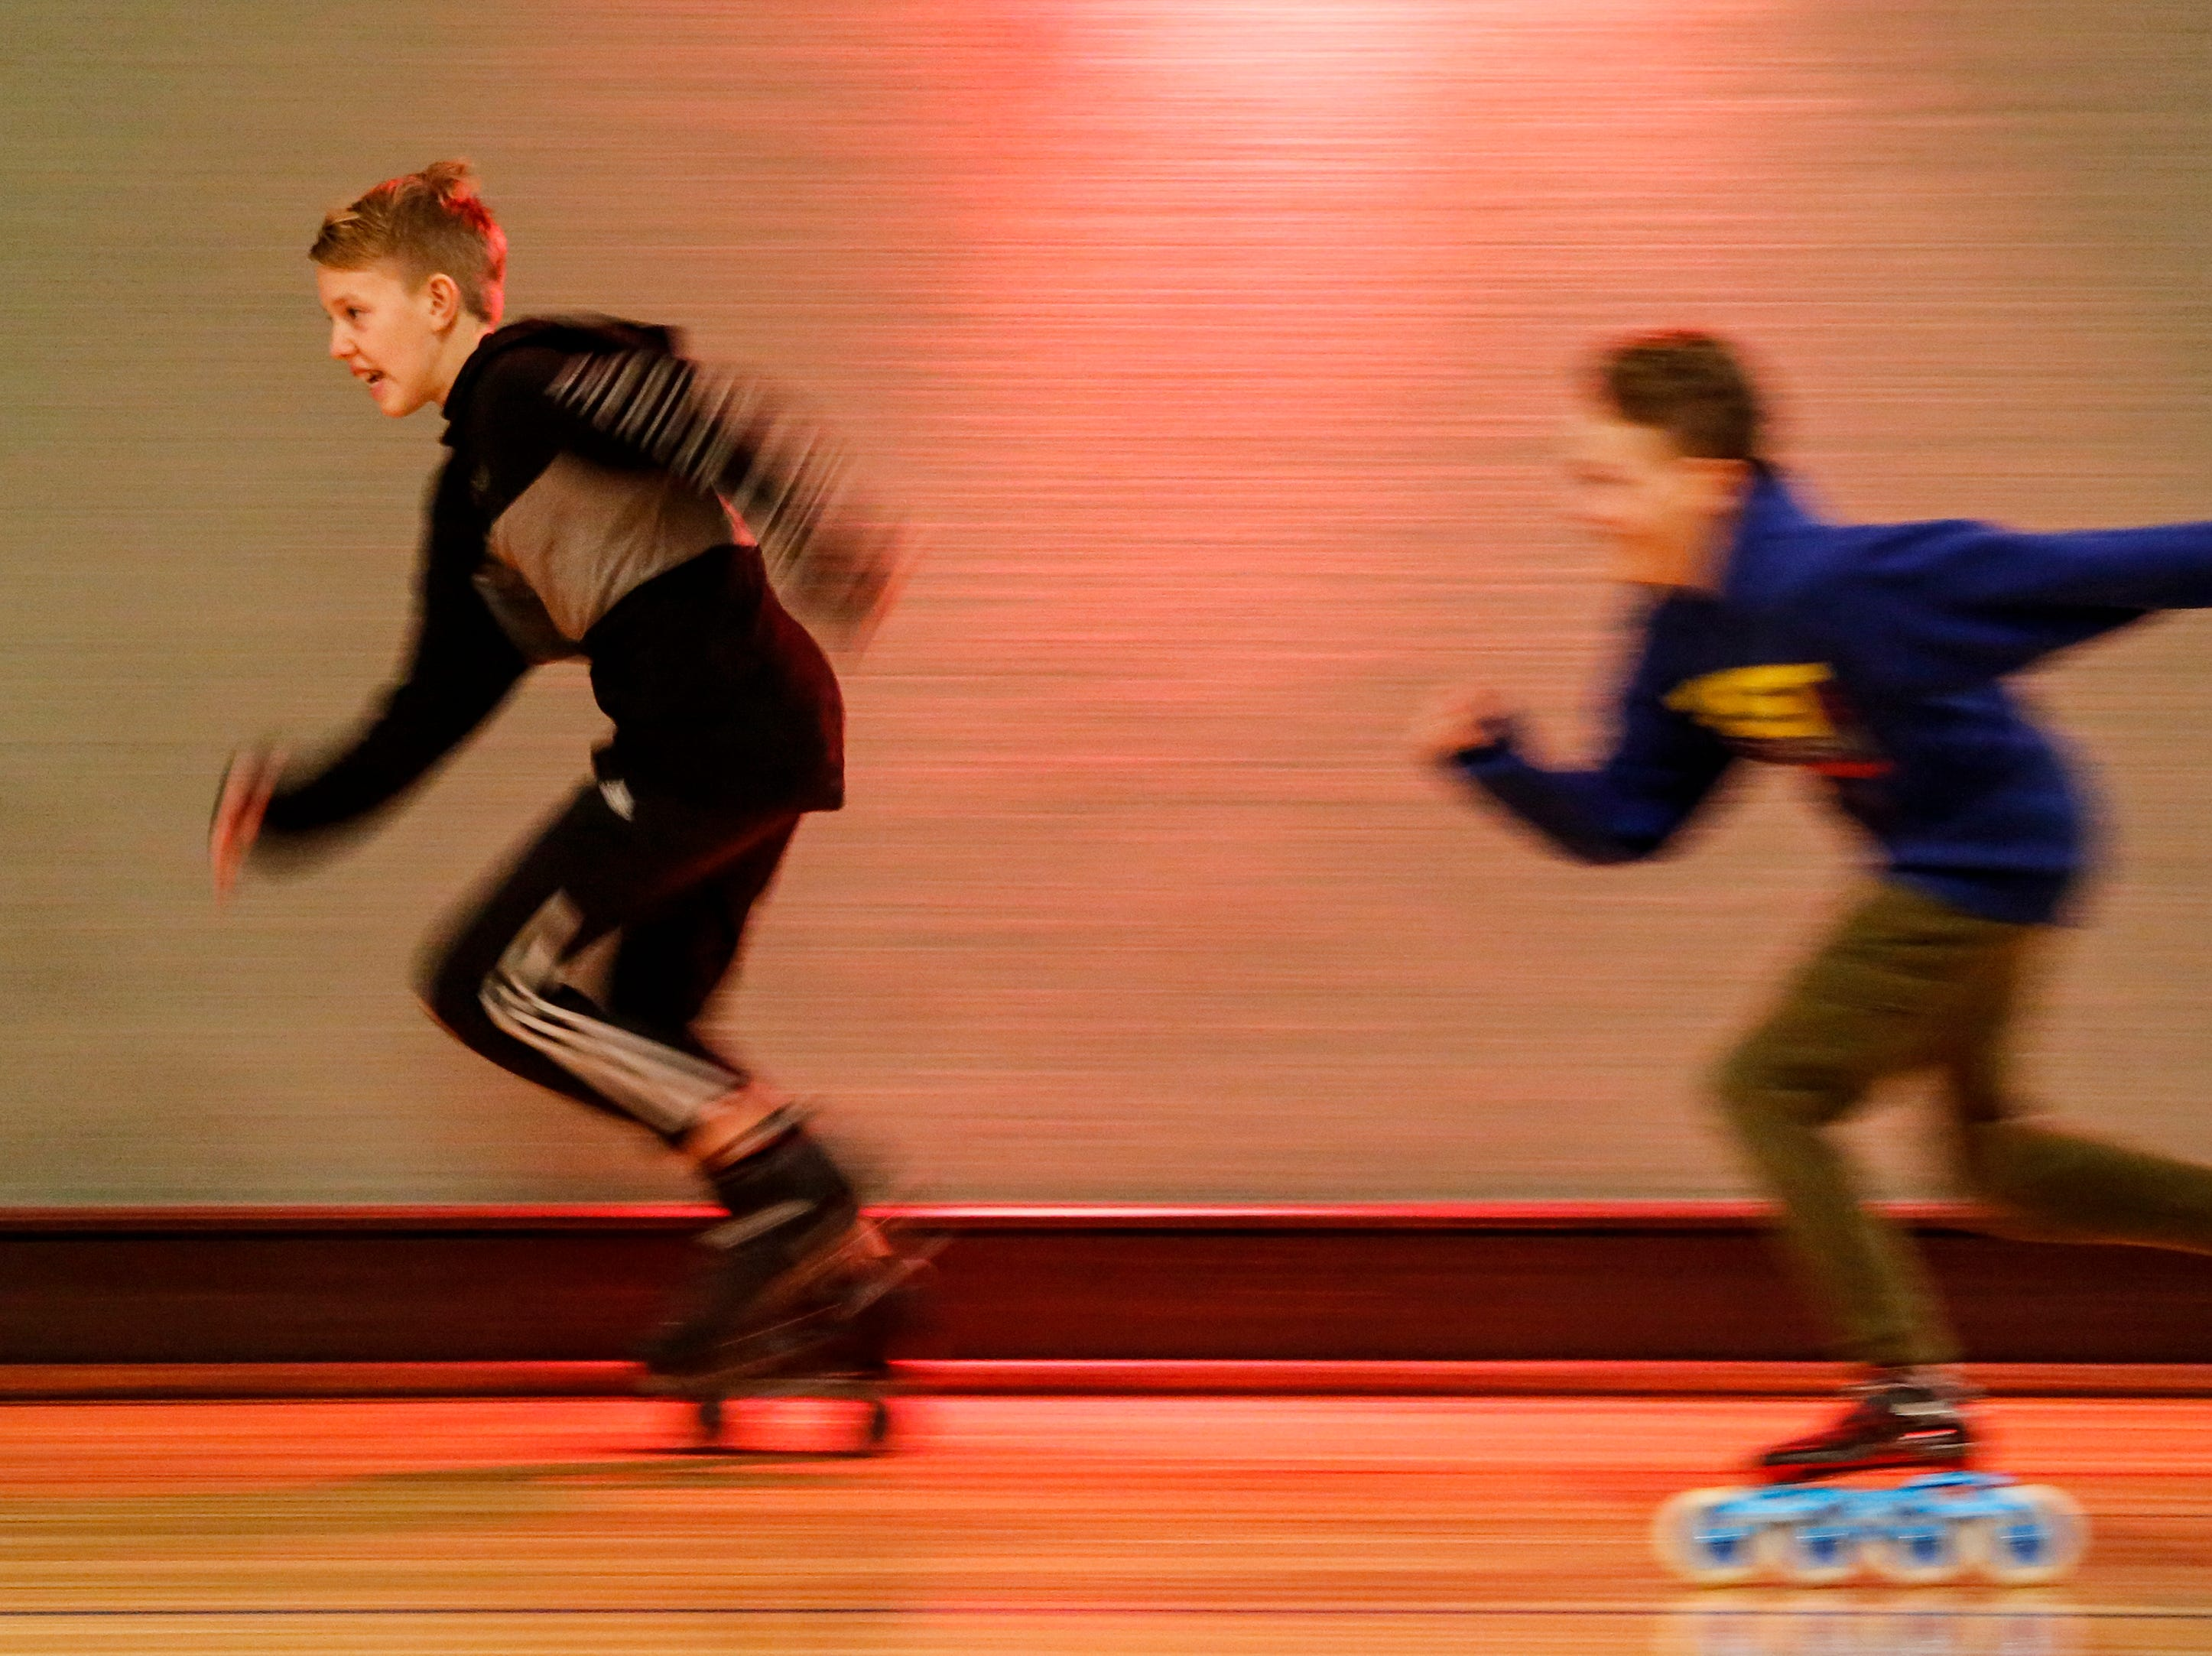 Boys race during the 20th annual Santa Skate at Rollaire Skate Center Saturday, December 15, 2018, in Manitowoc, Wis. Joshua Clark/USA TODAY NETWORK-Wisconsin